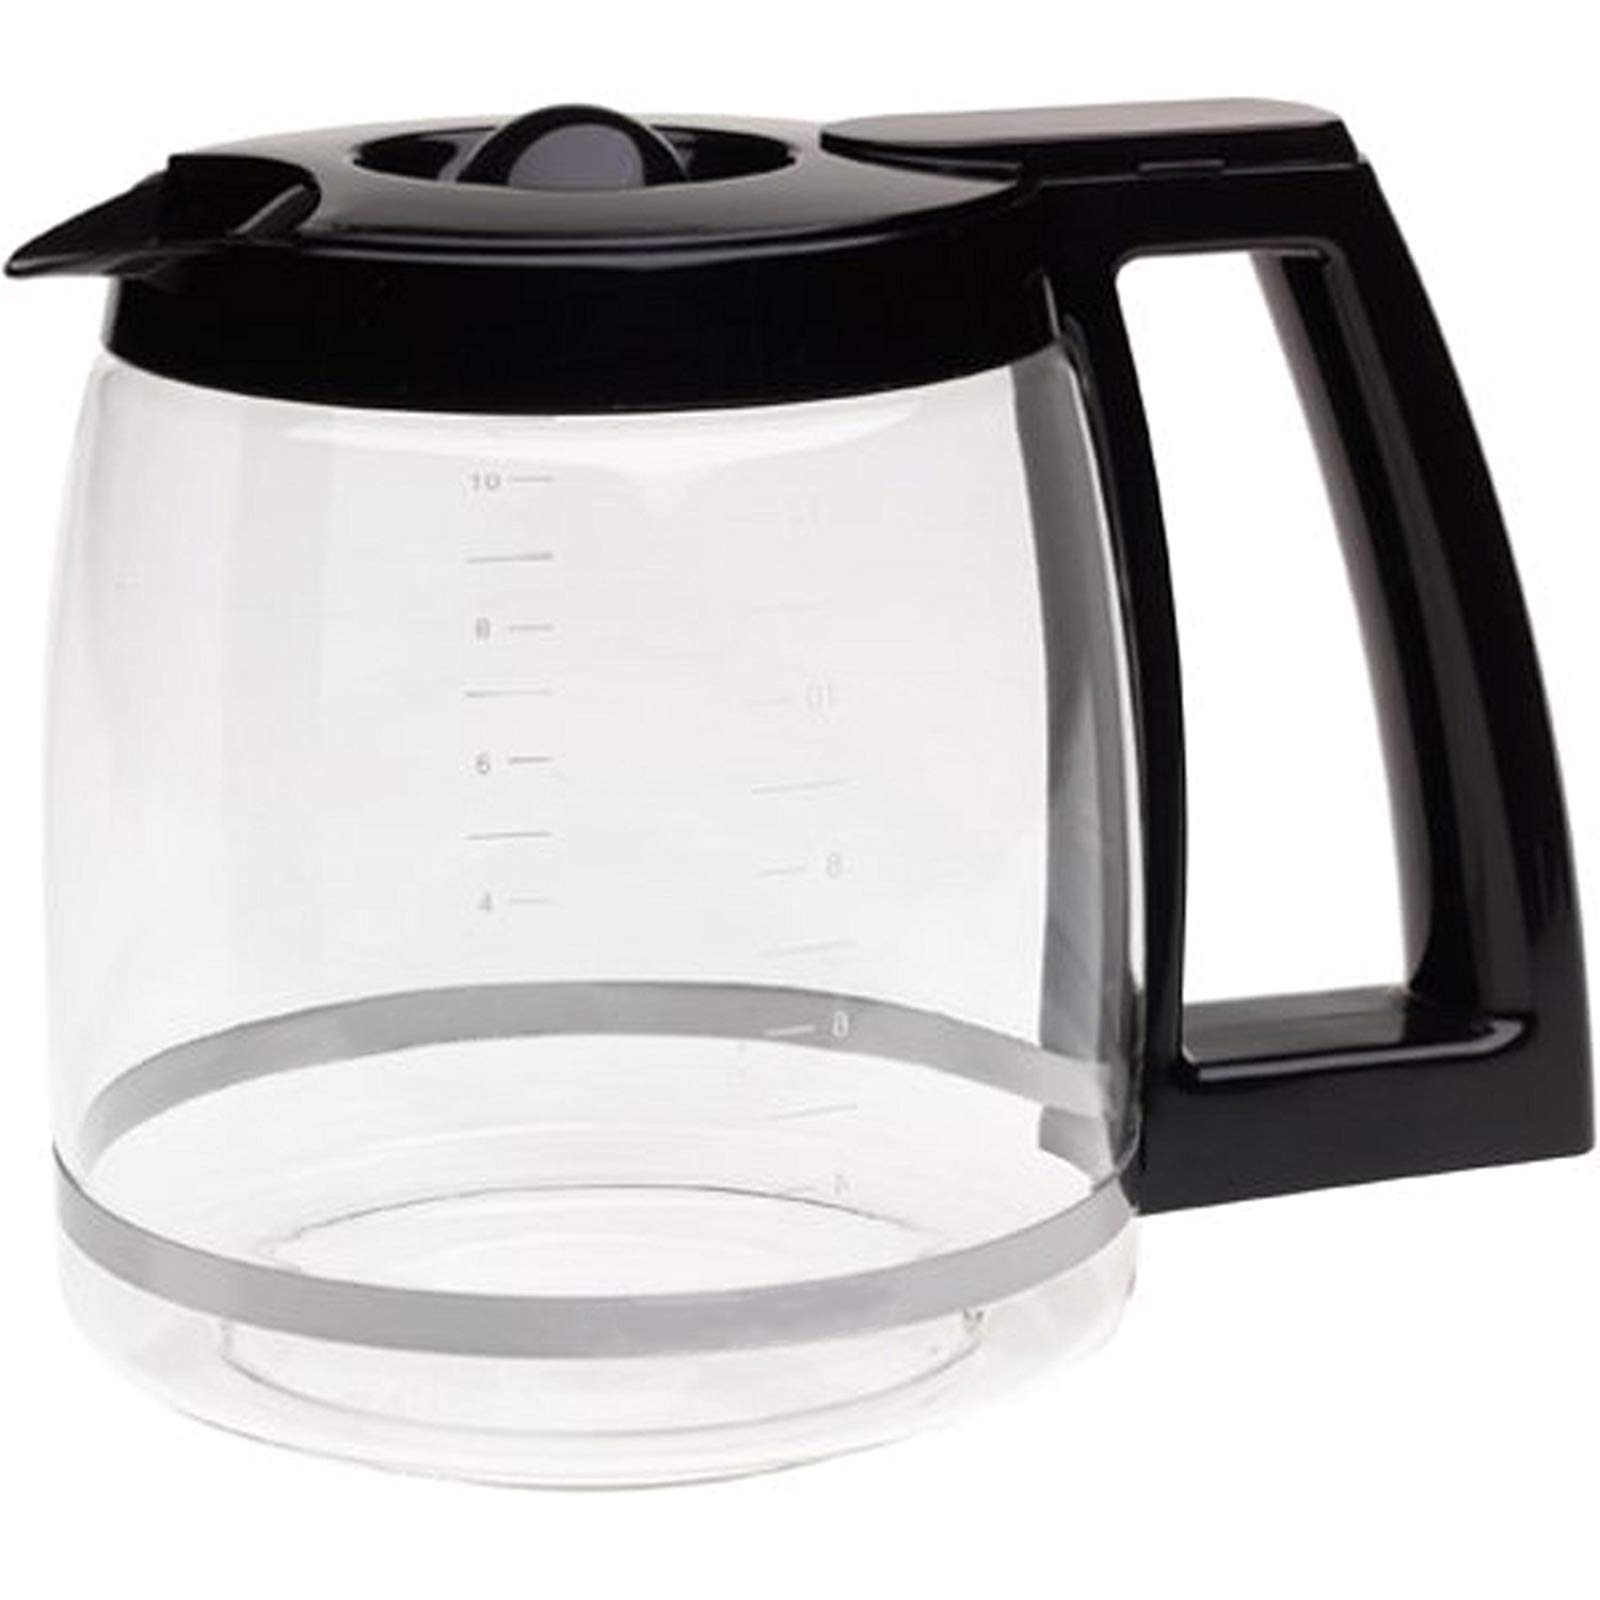 First4Spares Replacement Coffee Maker Machine Glass Carafe Jug for Cuisinart DCC-1200PRC, Black